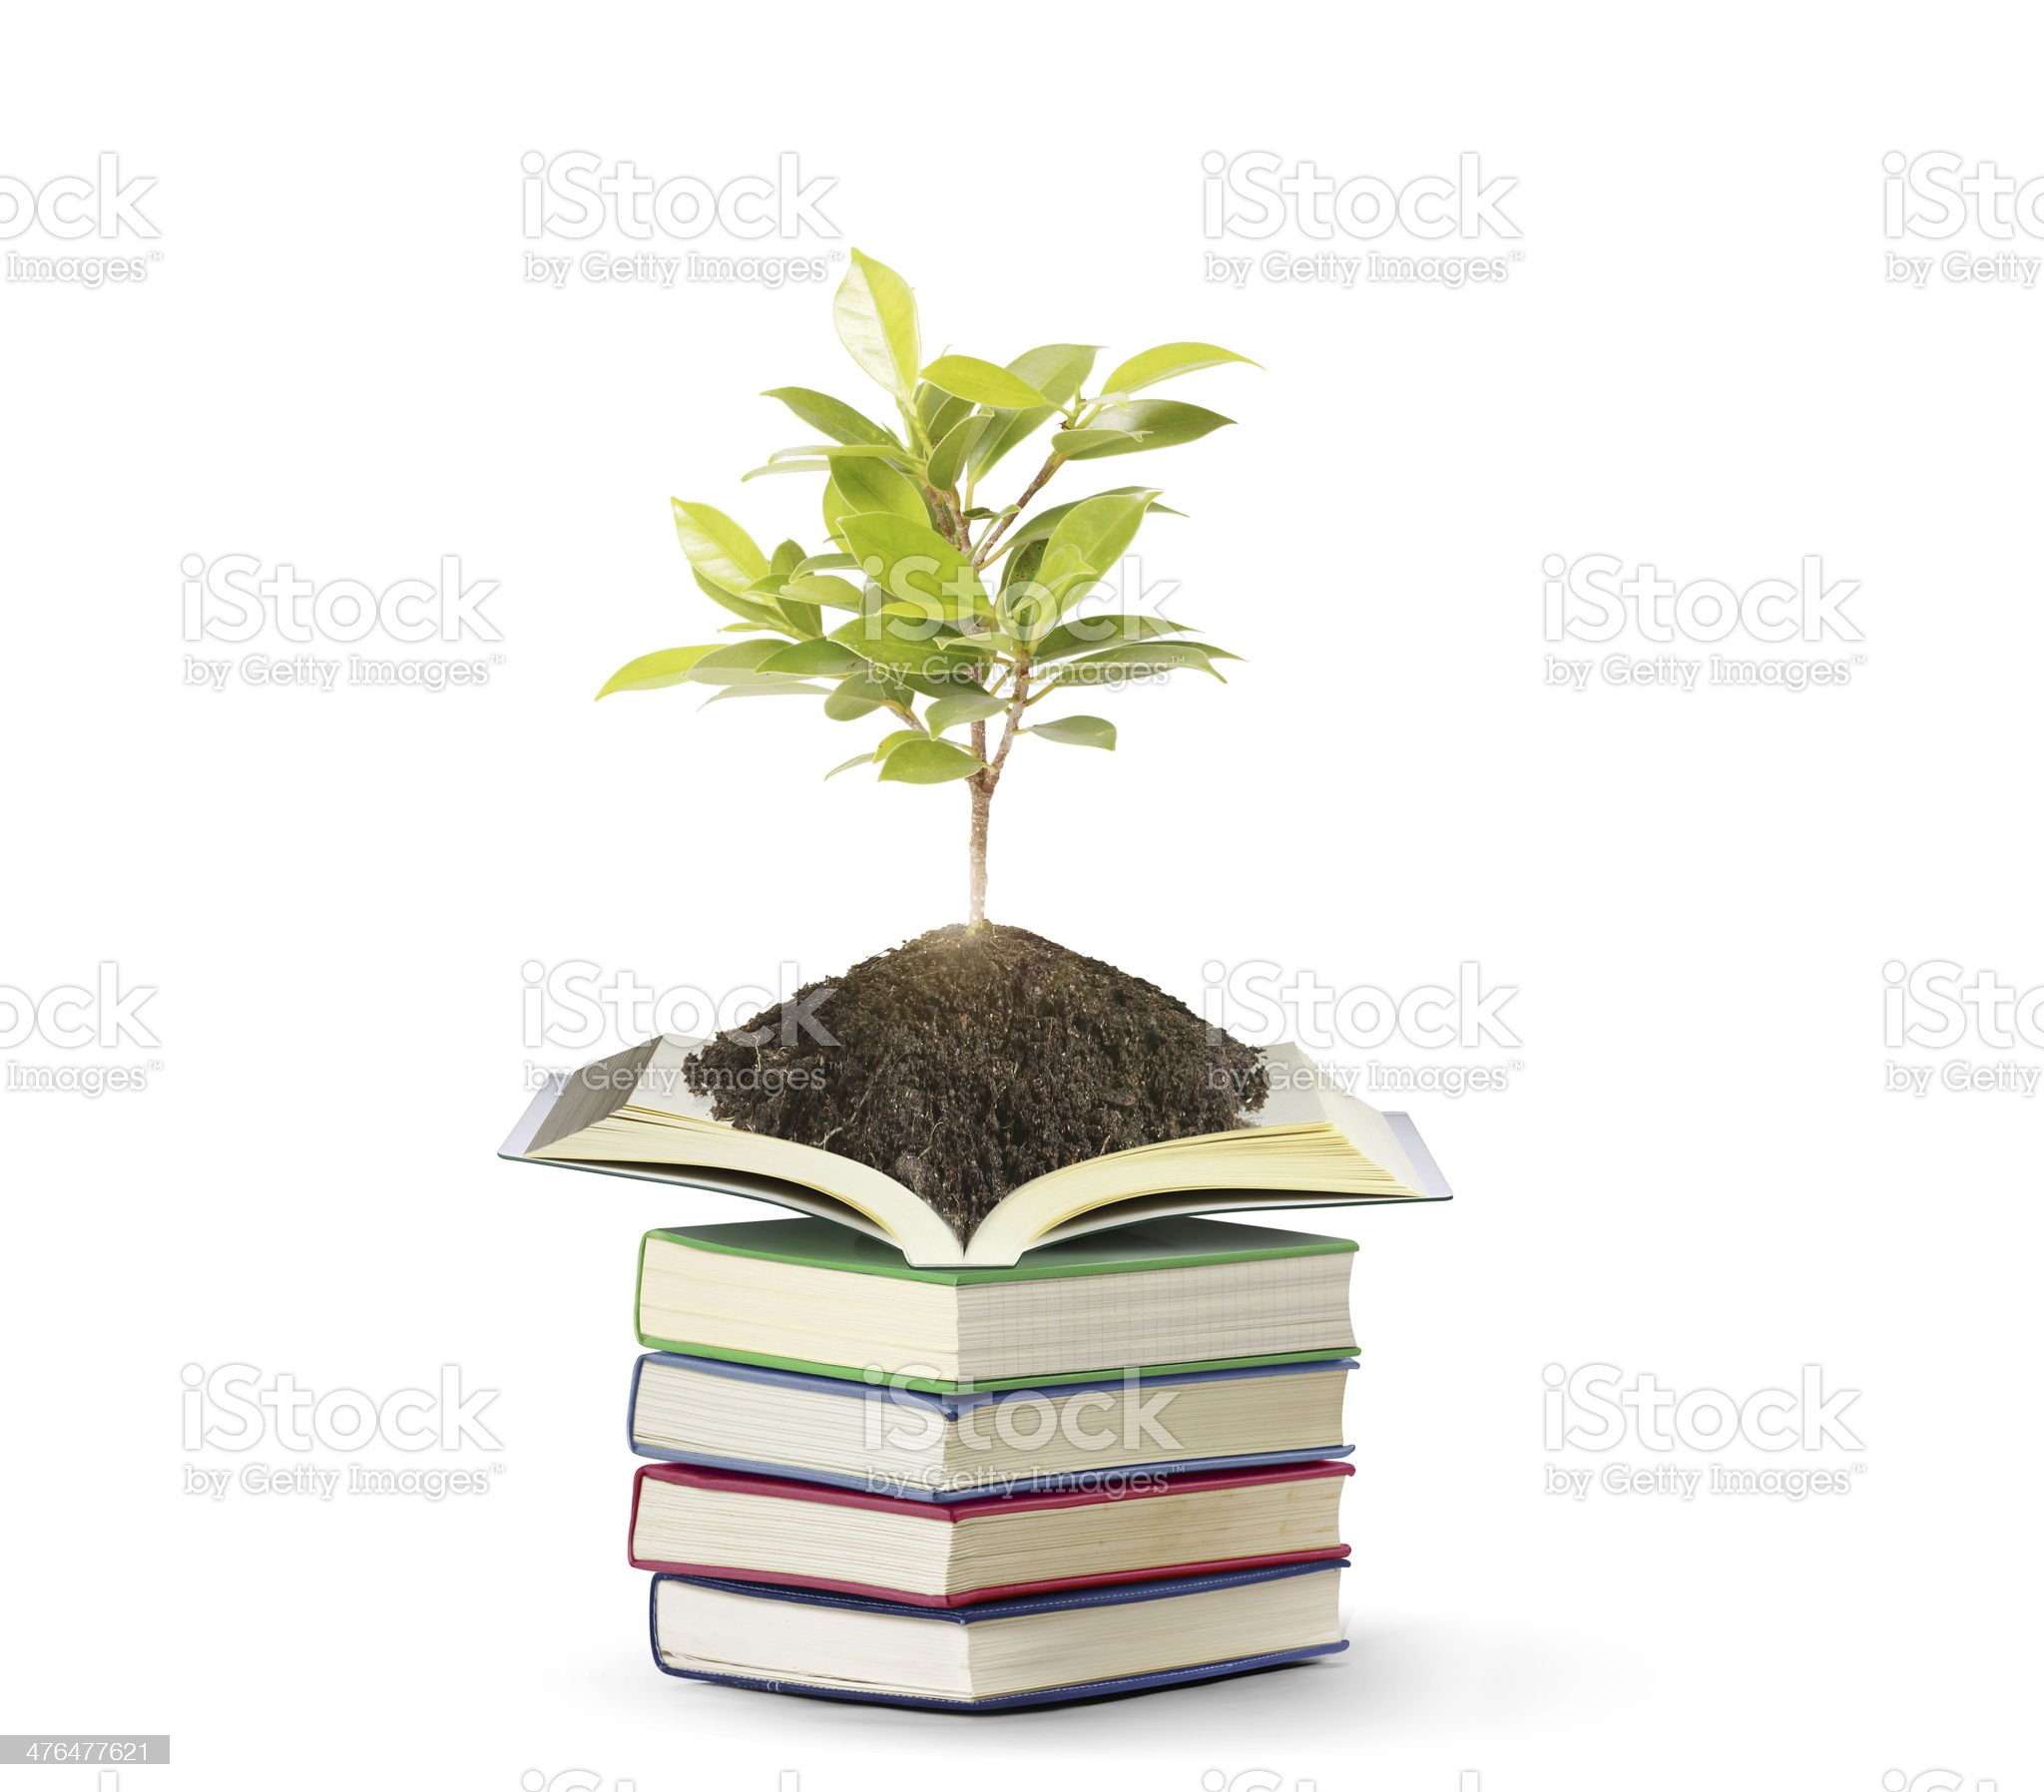 books with plant royalty-free stock photo